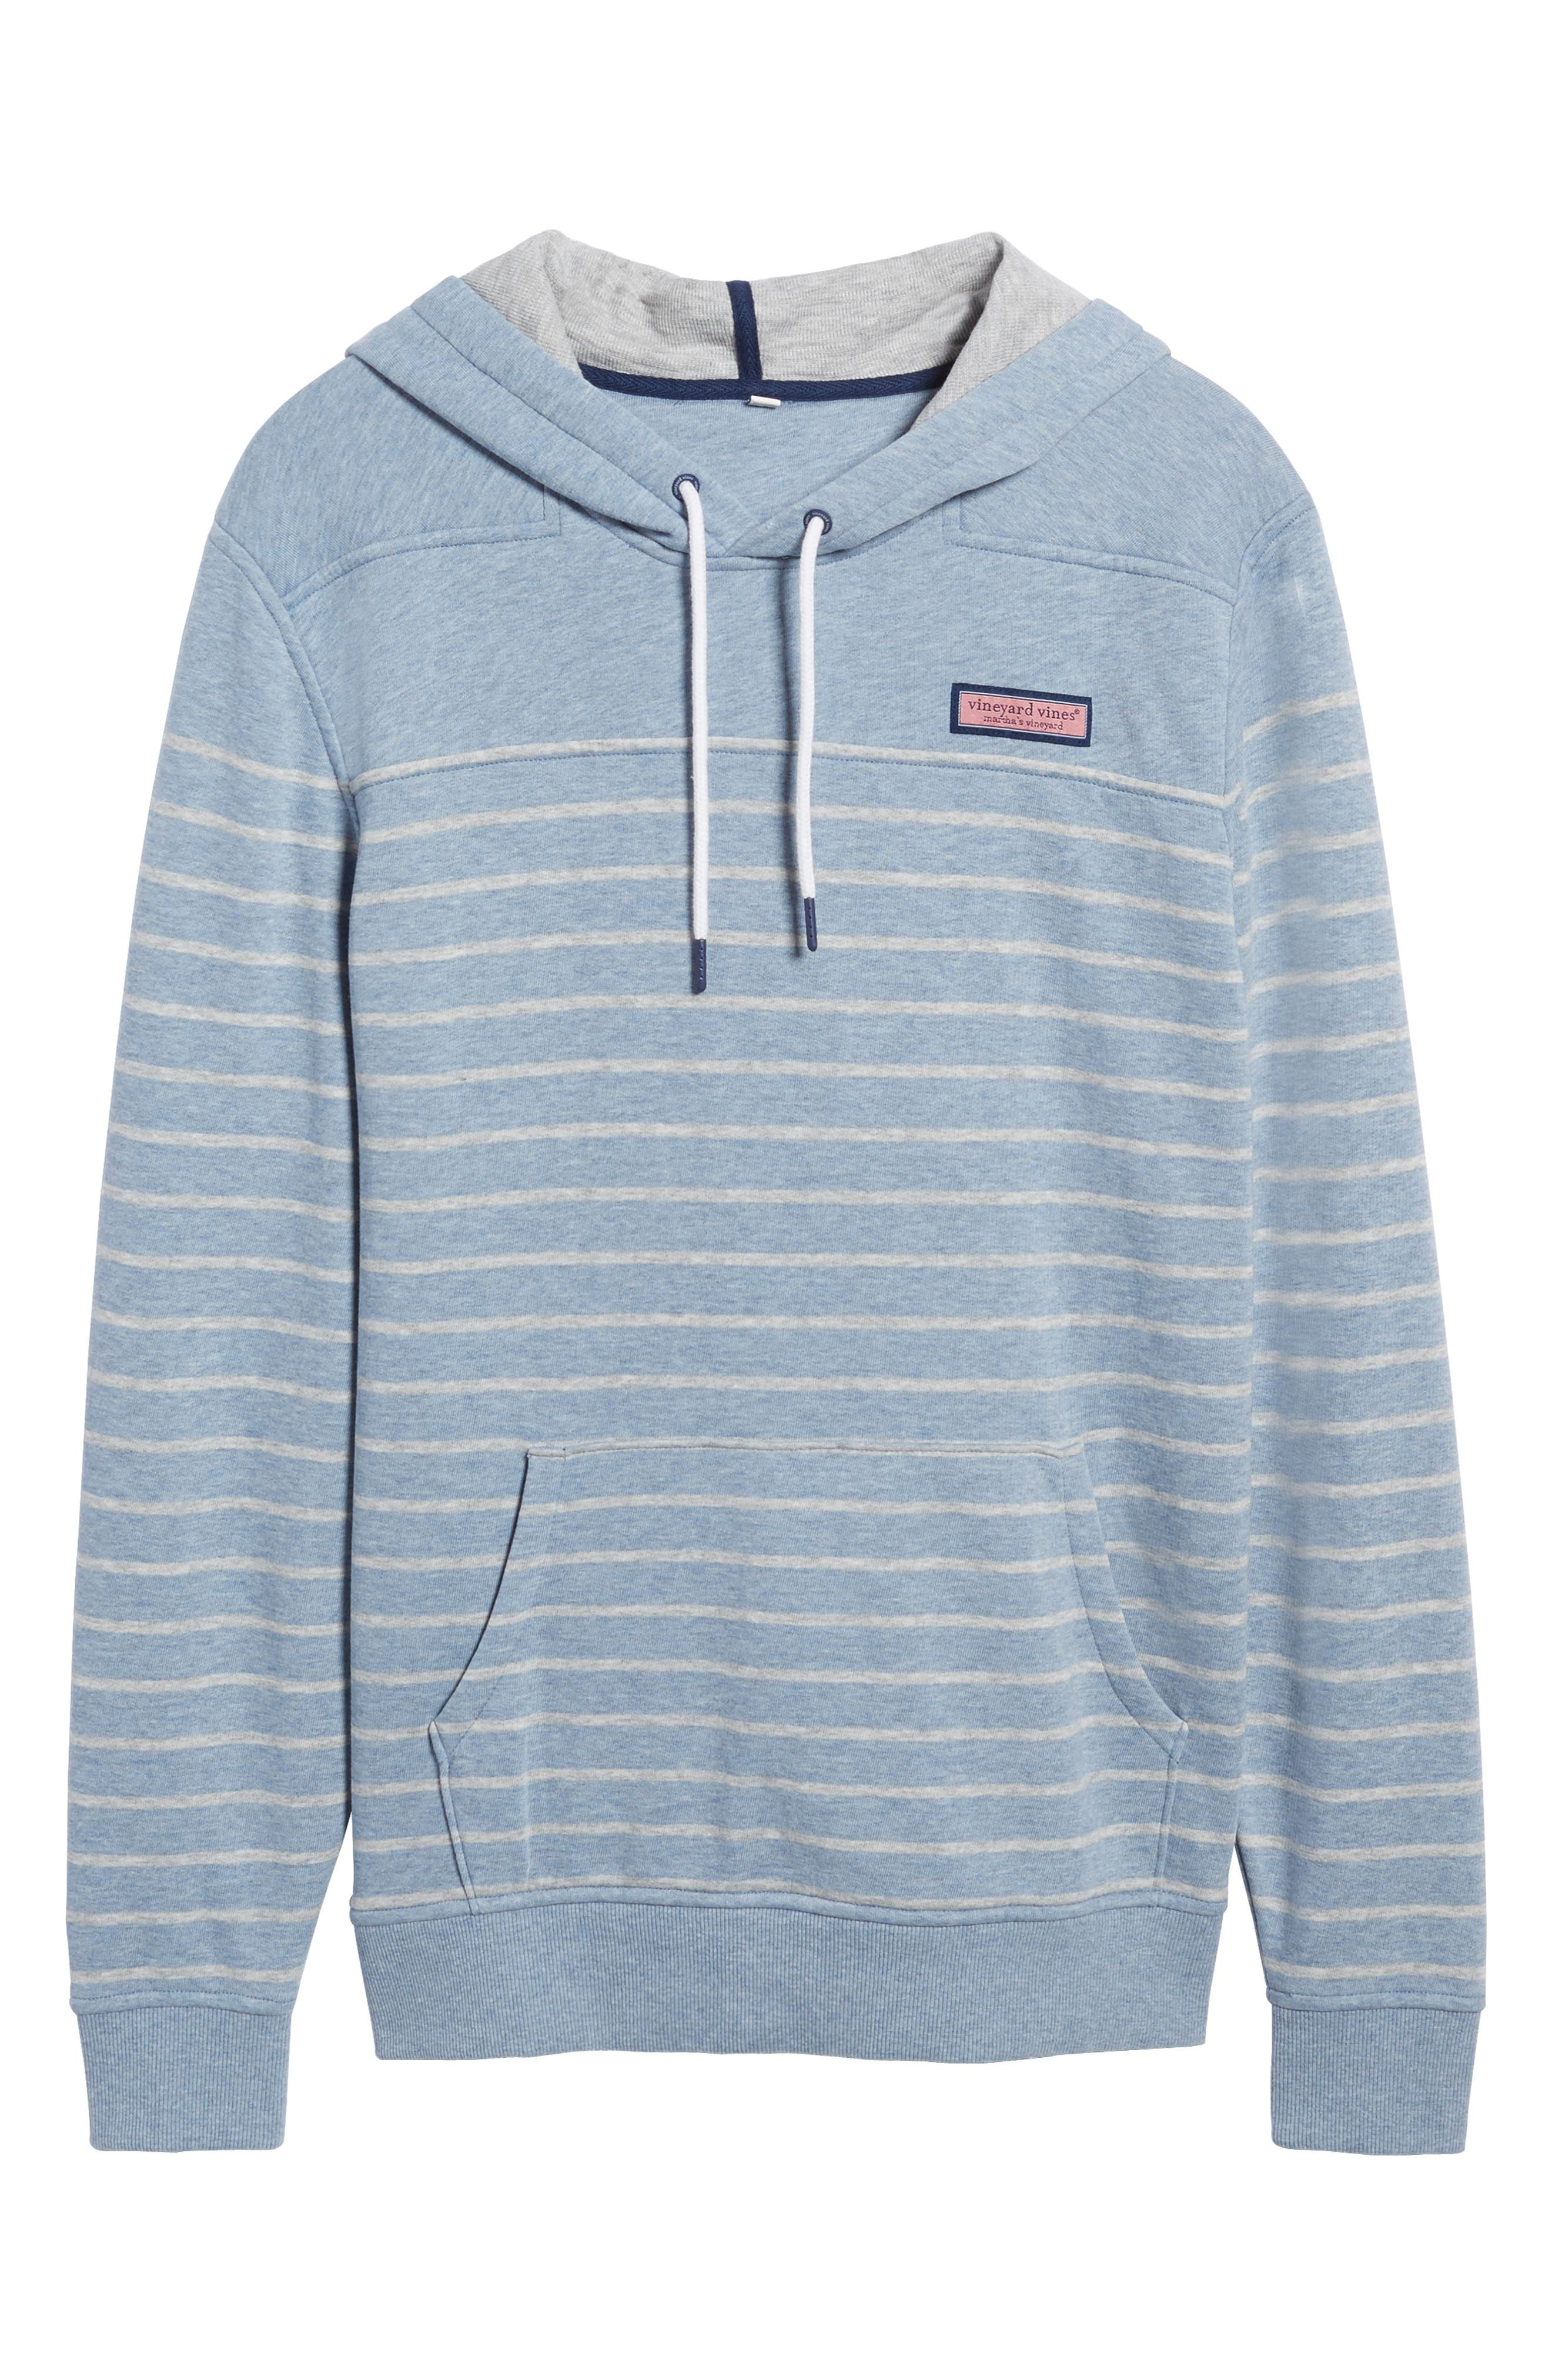 Stripe Washed Cotton Pullover Hoodie,                             Alternate thumbnail 6, color,                             400